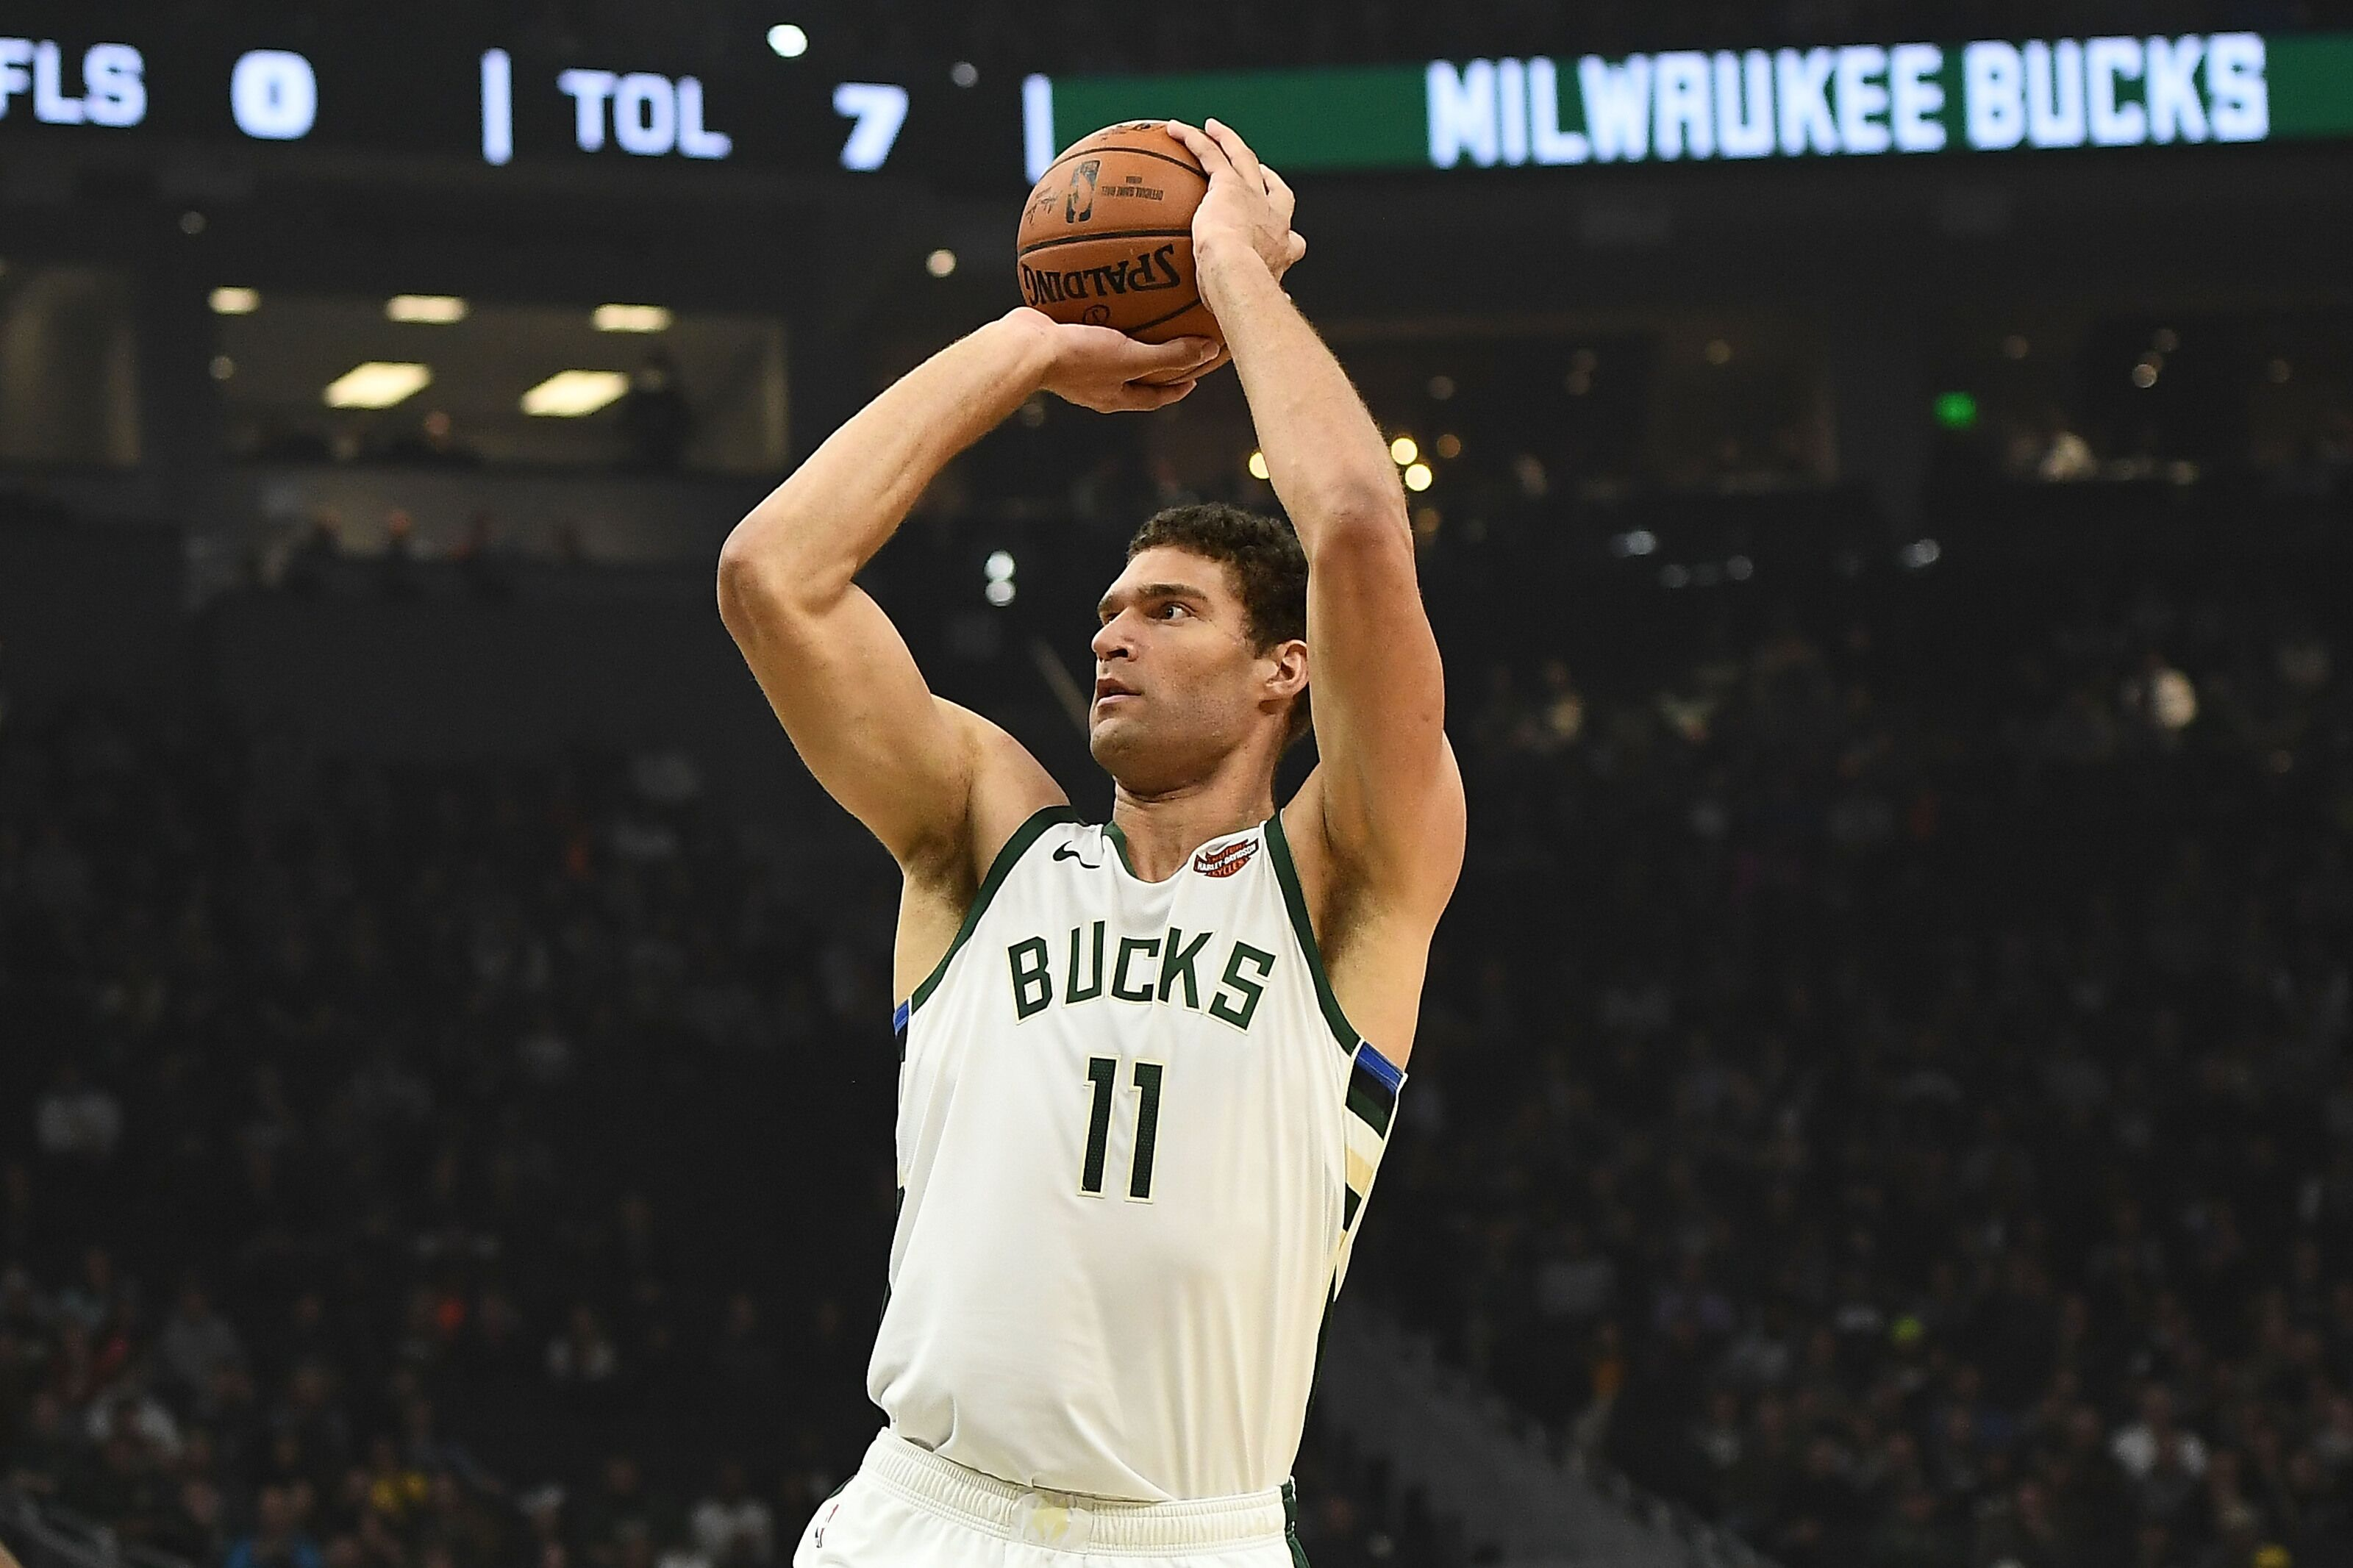 Milwaukee Bucks: How will they perform from three-point range?